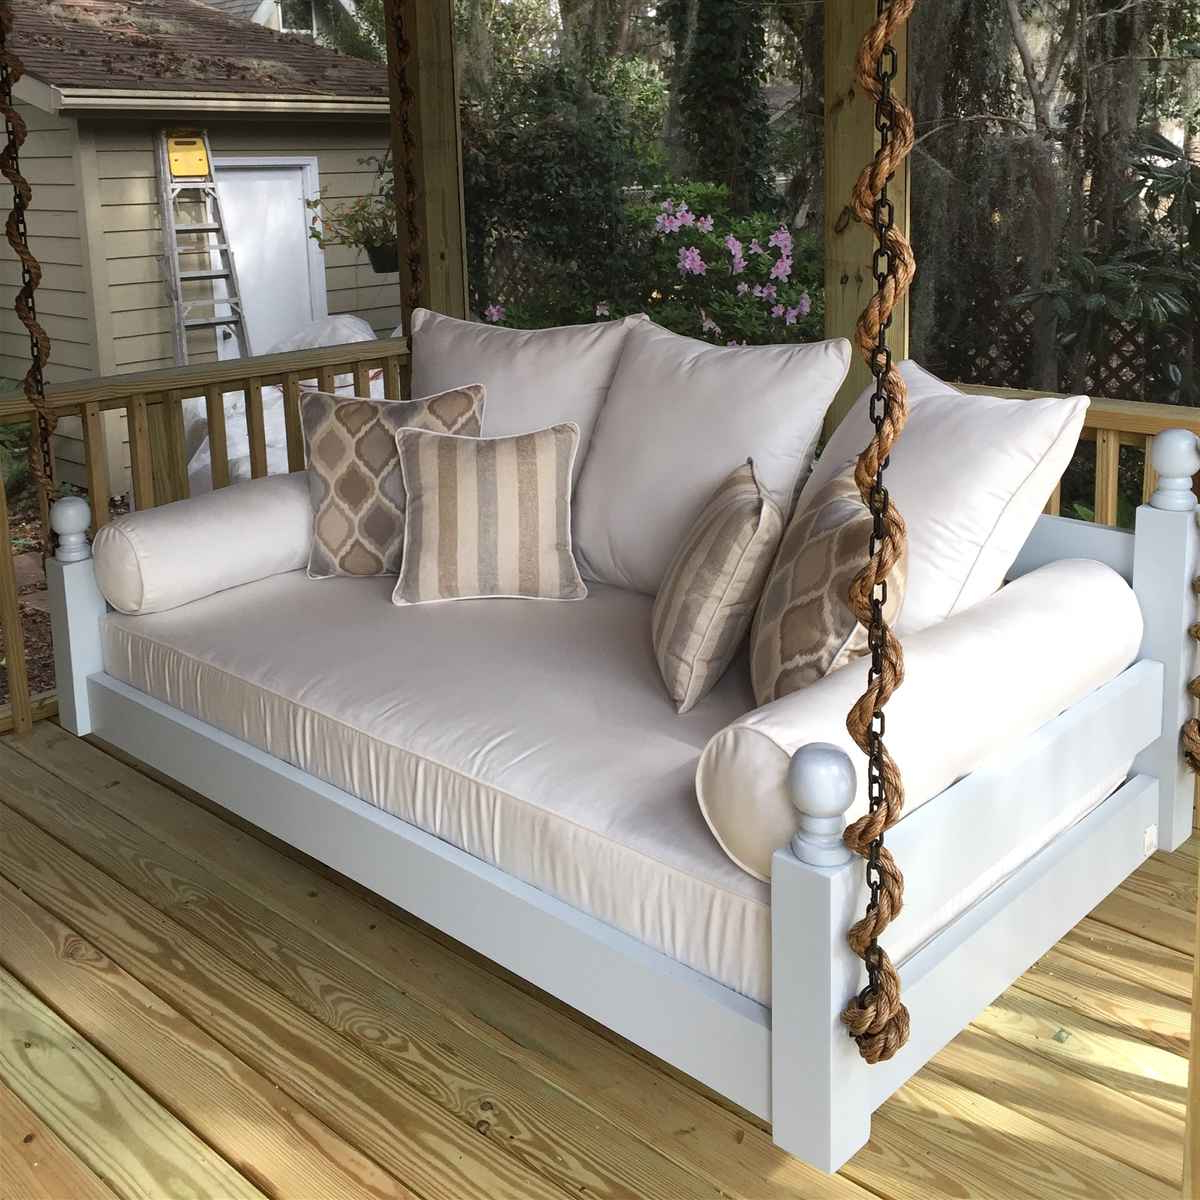 Preferred Appealing Outdoor Beds For Large Dogs Bar Sets Patio Heated In Lamp Outdoor Porch Swings (View 11 of 30)